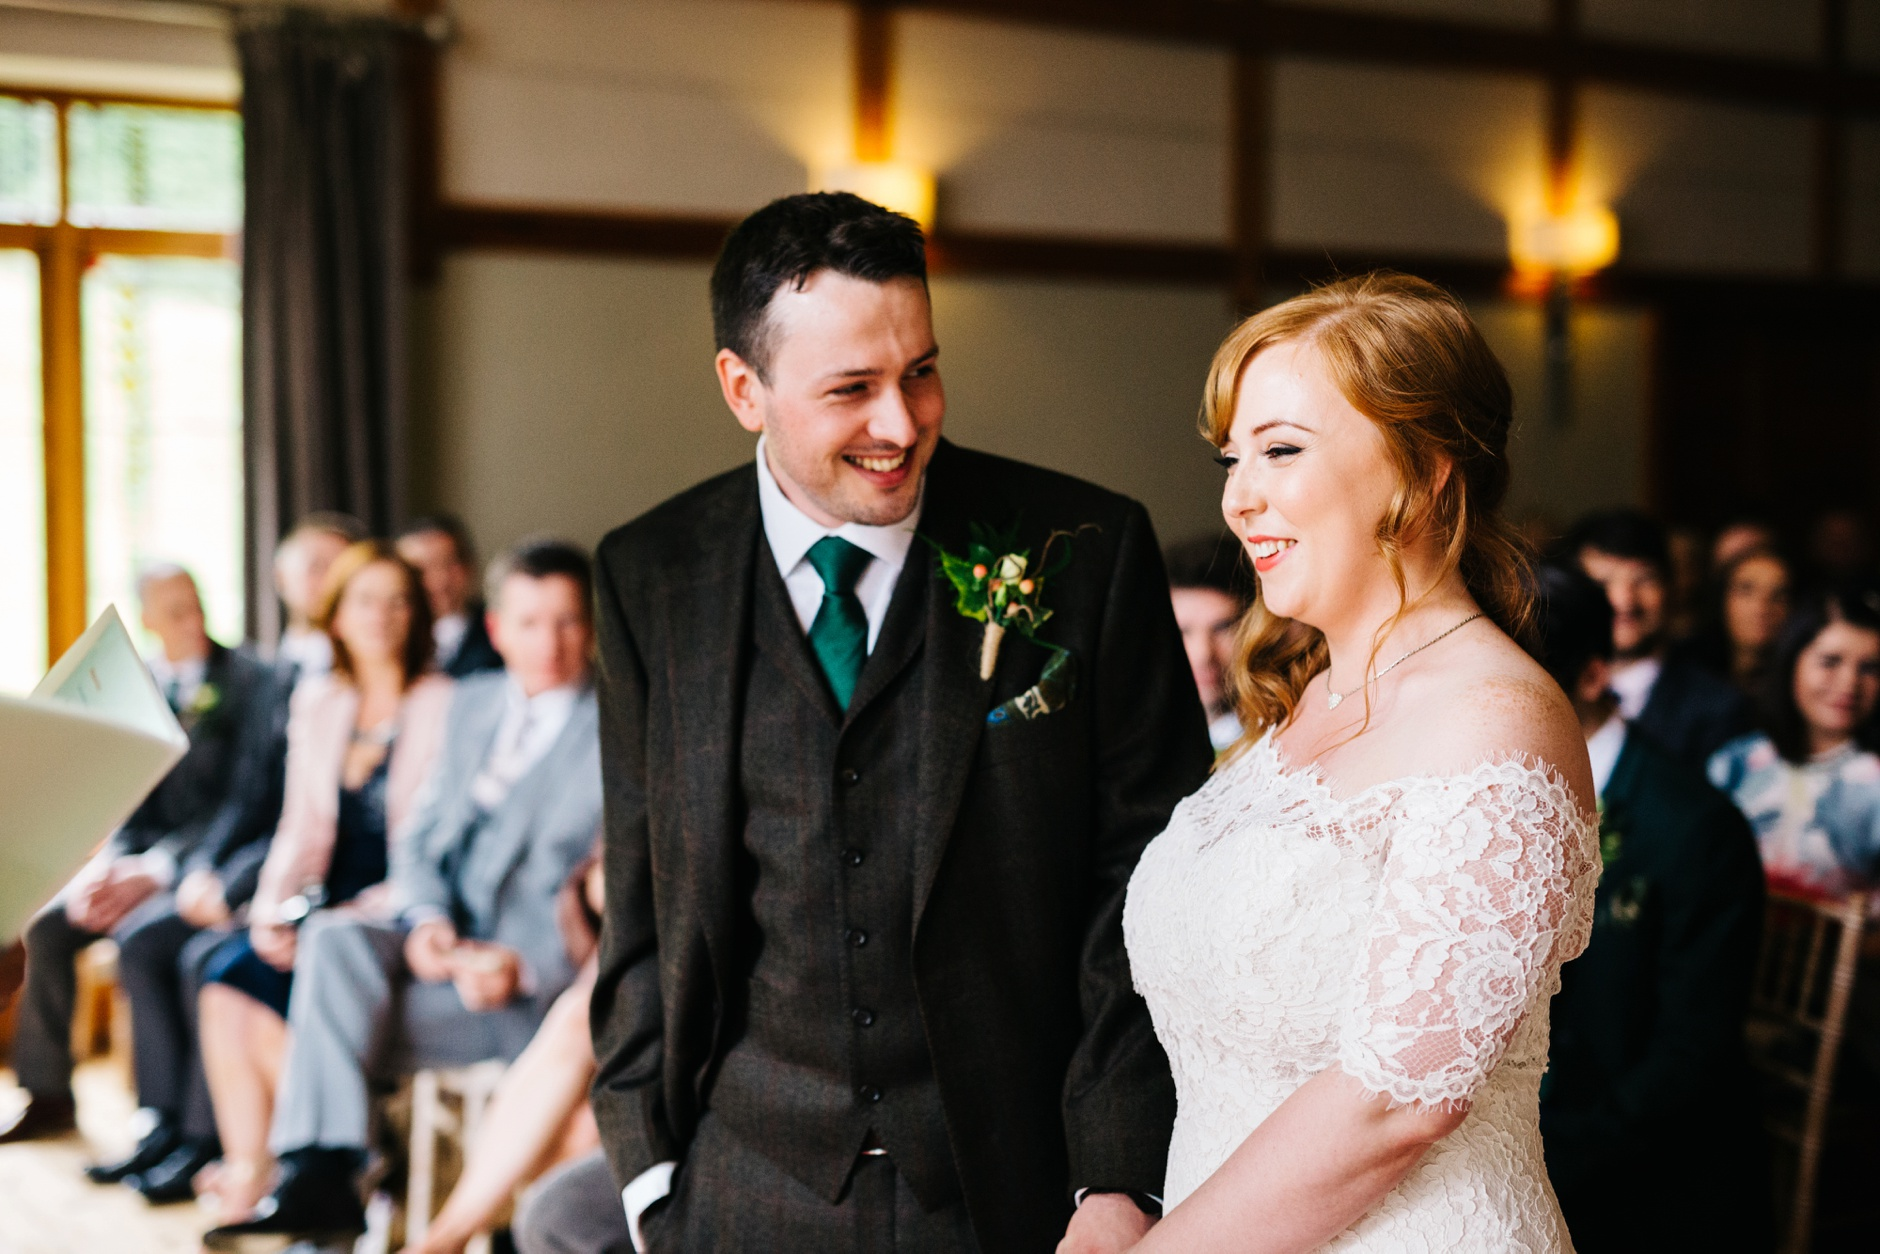 humanist wedding ceremony wedding photographer northern ireland